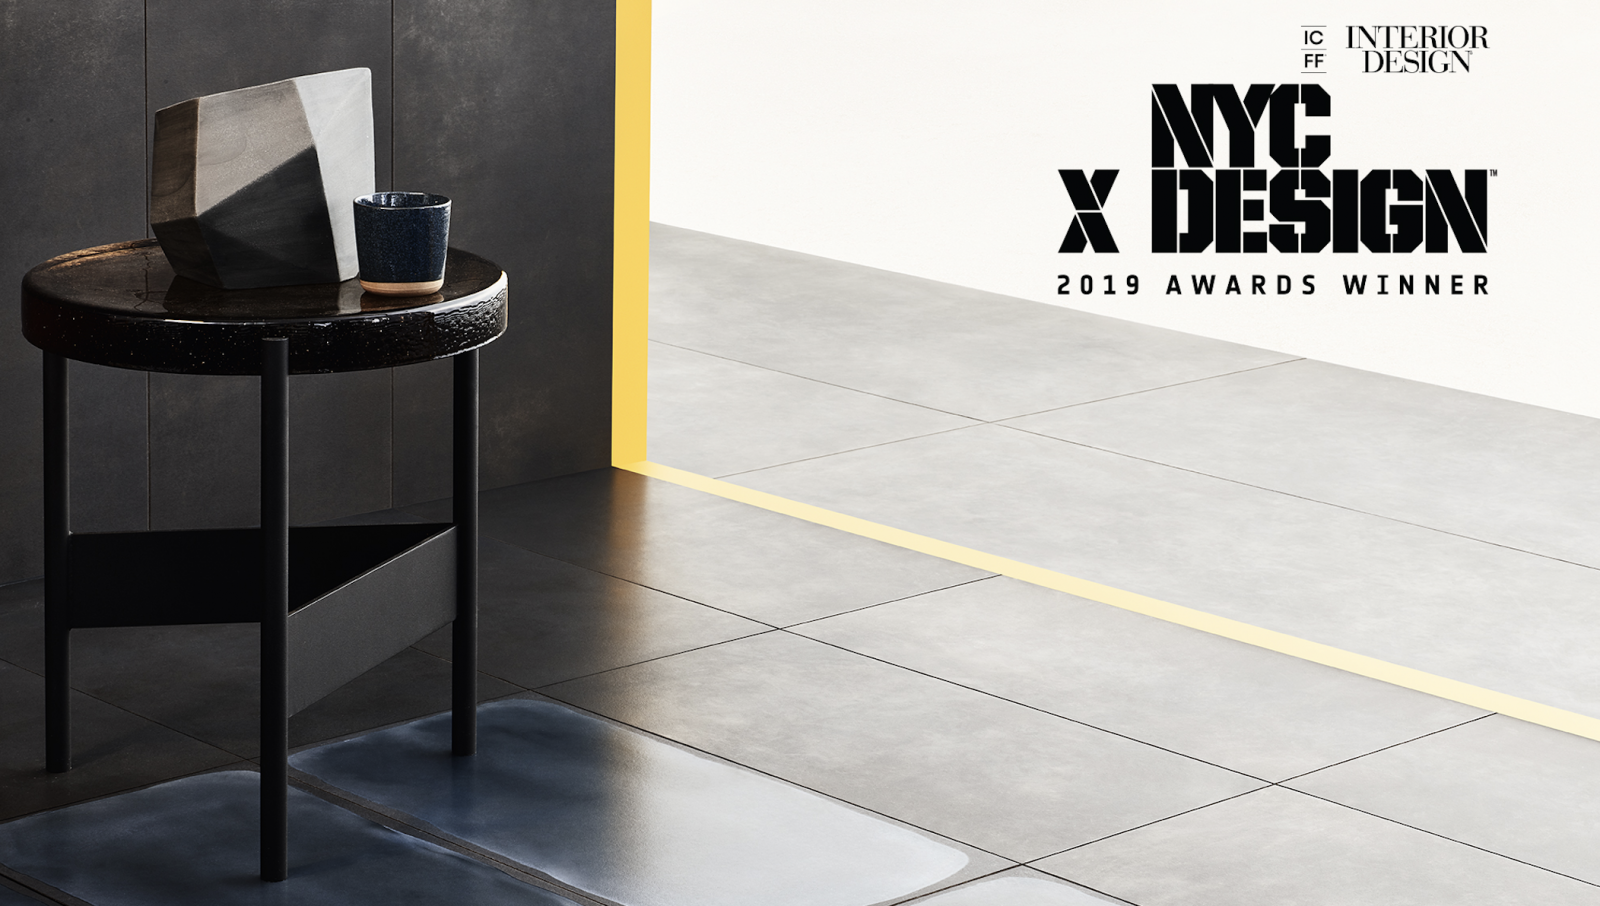 CERAMICHE PIEMME WON BEST HARD FLOORING PRODUCT - NYCxDESIGN 2019